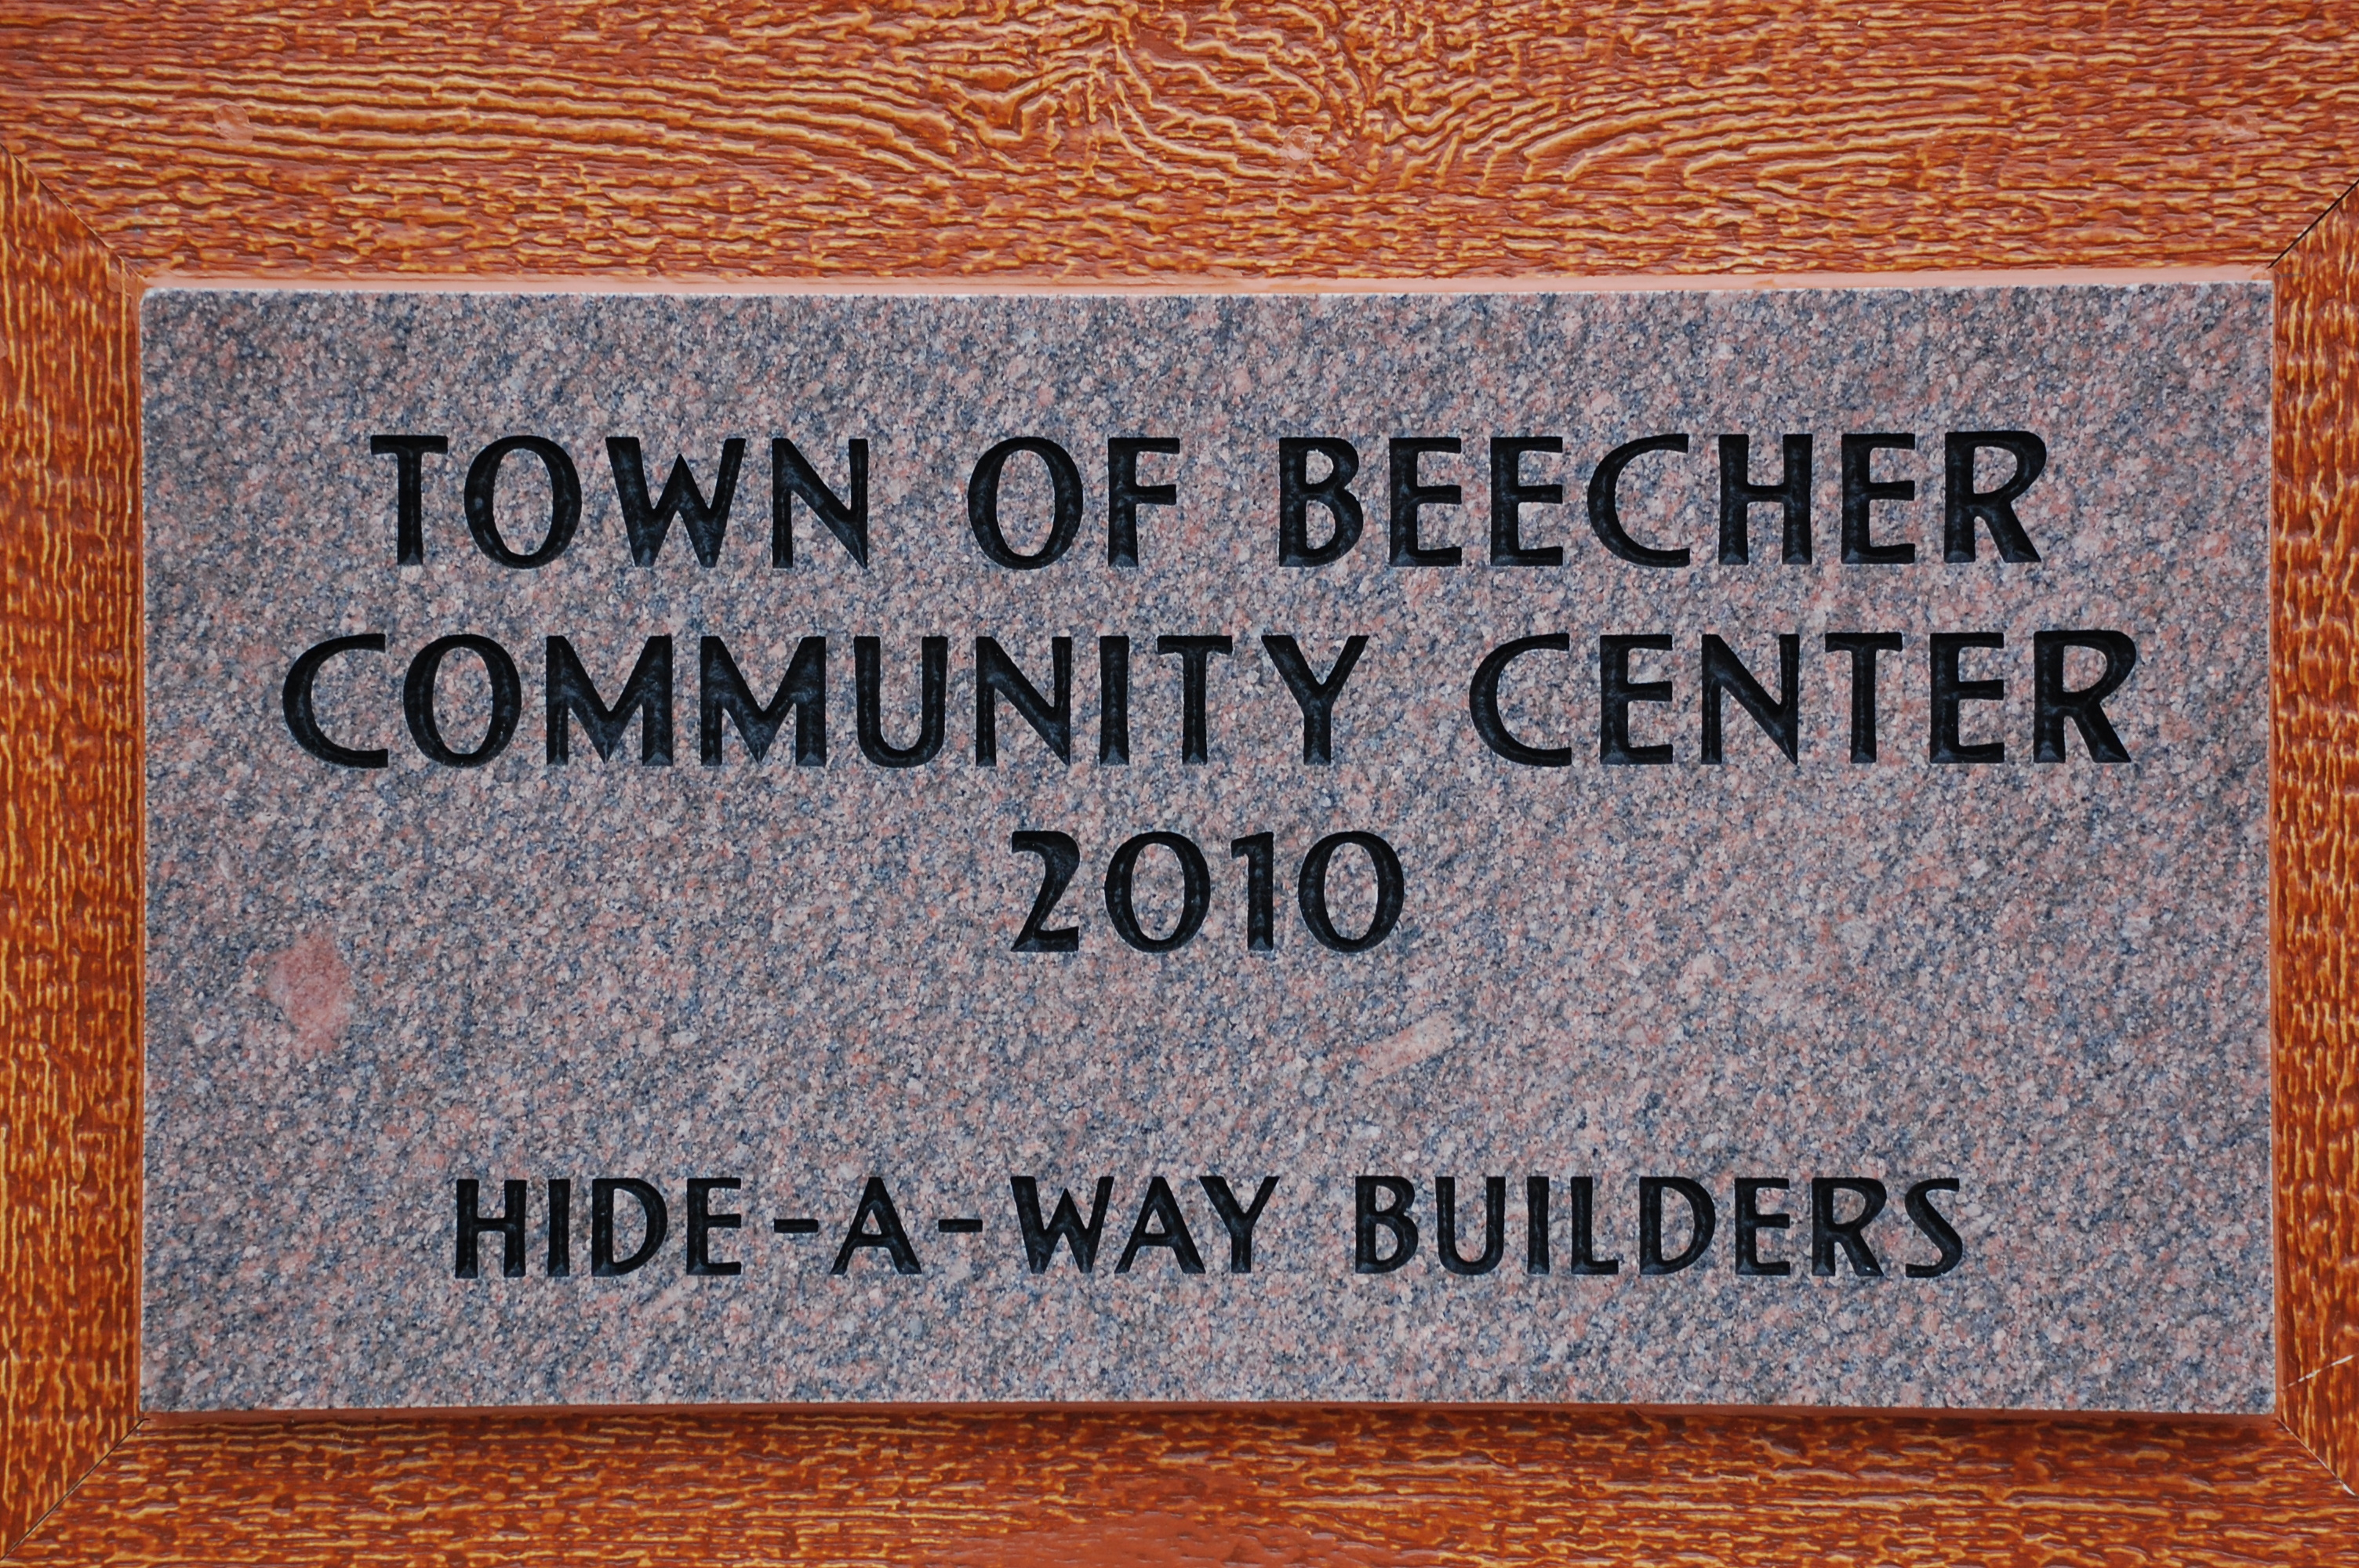 Town of Beecher